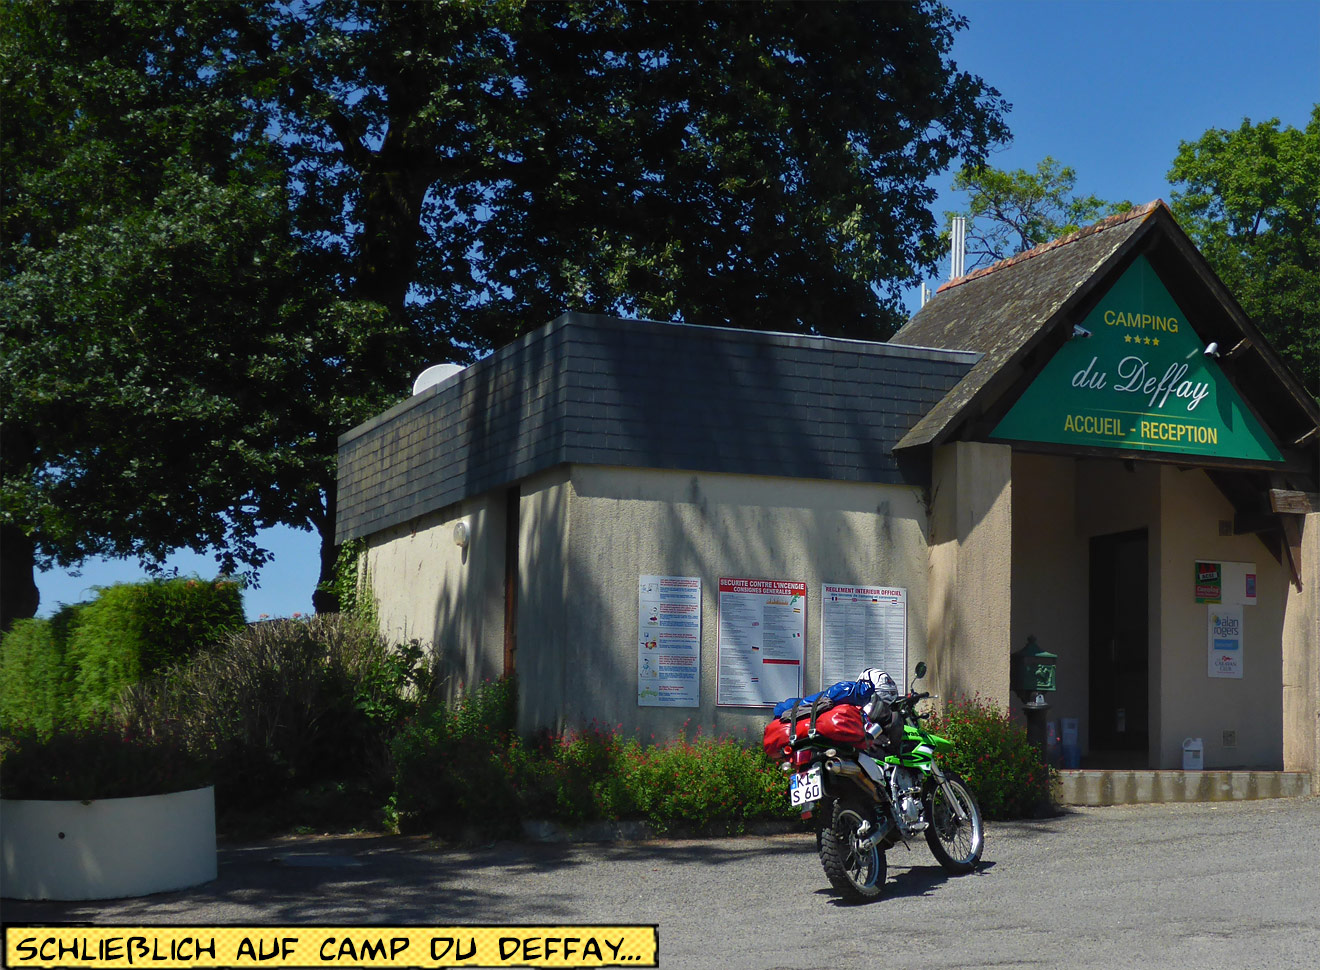 Camping du Duffay Rezeption